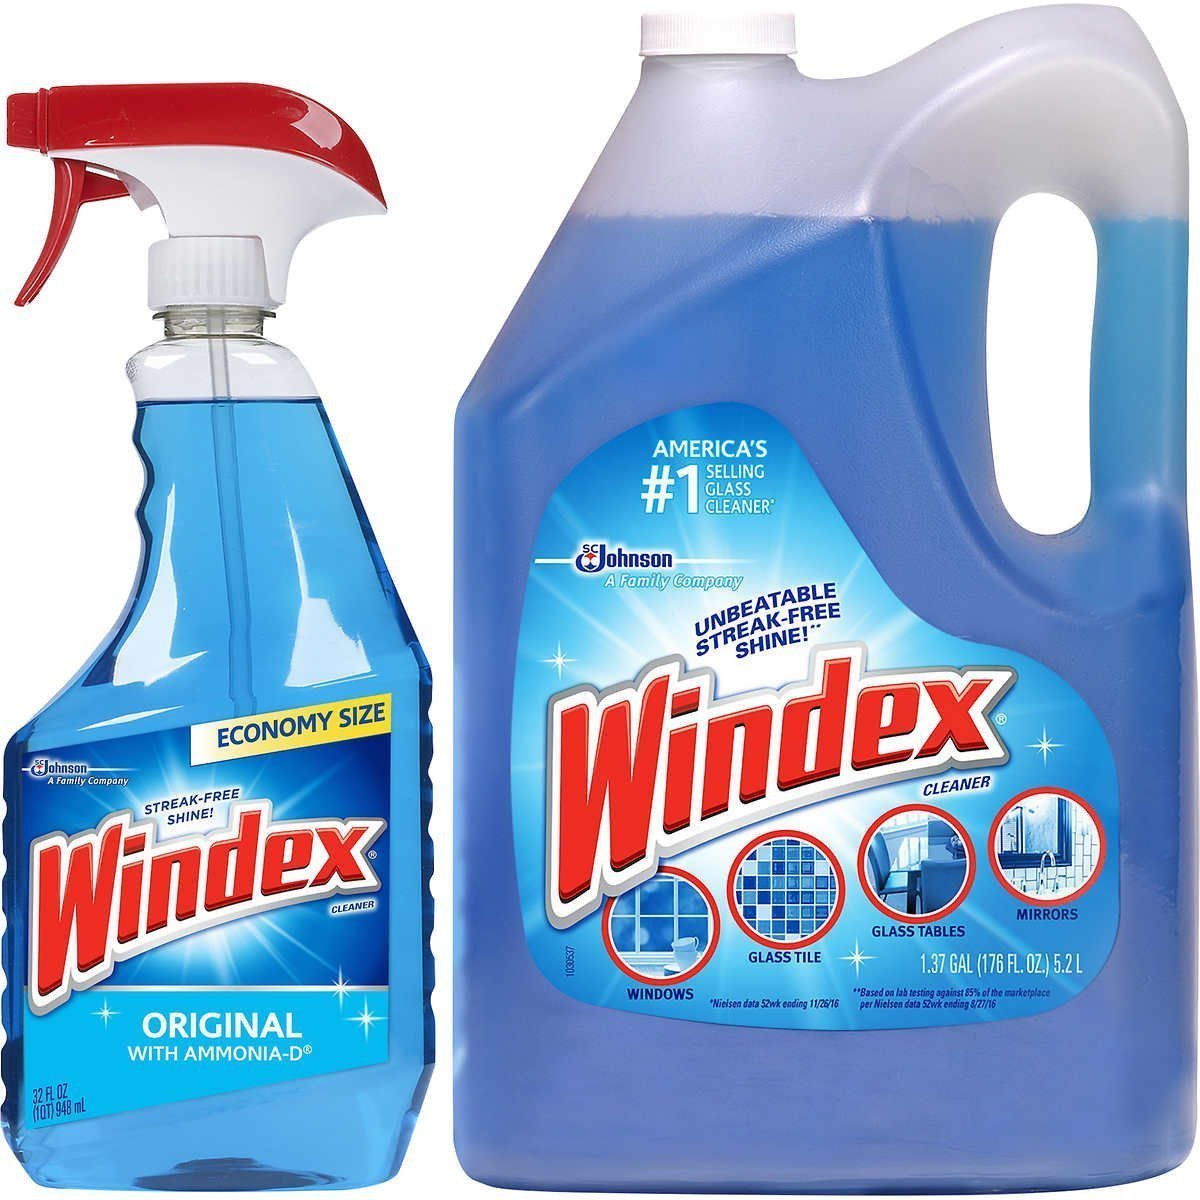 Windex Original Glass Cleaner Set: 1.32 Gallons Refill + 32 Fl.oz. Trigger Spray